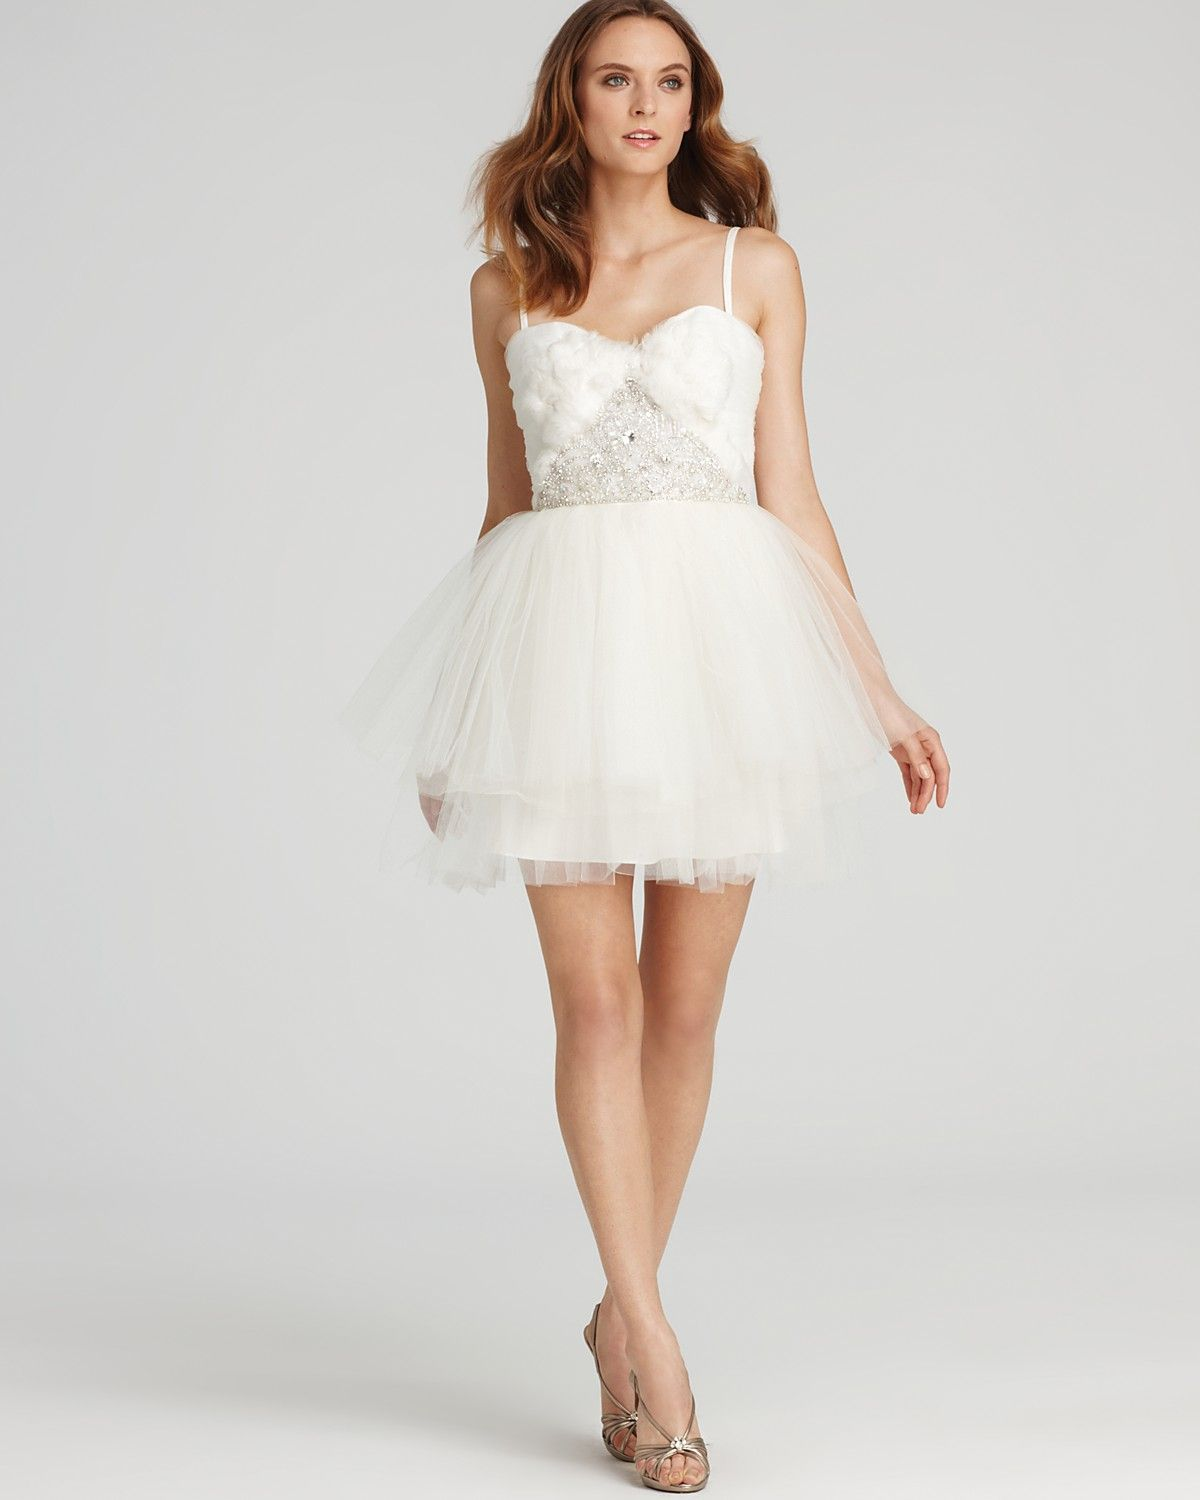 After wedding dress reception  cutesy  Wedding Dress  Pinterest  Shops Products and Feather dress